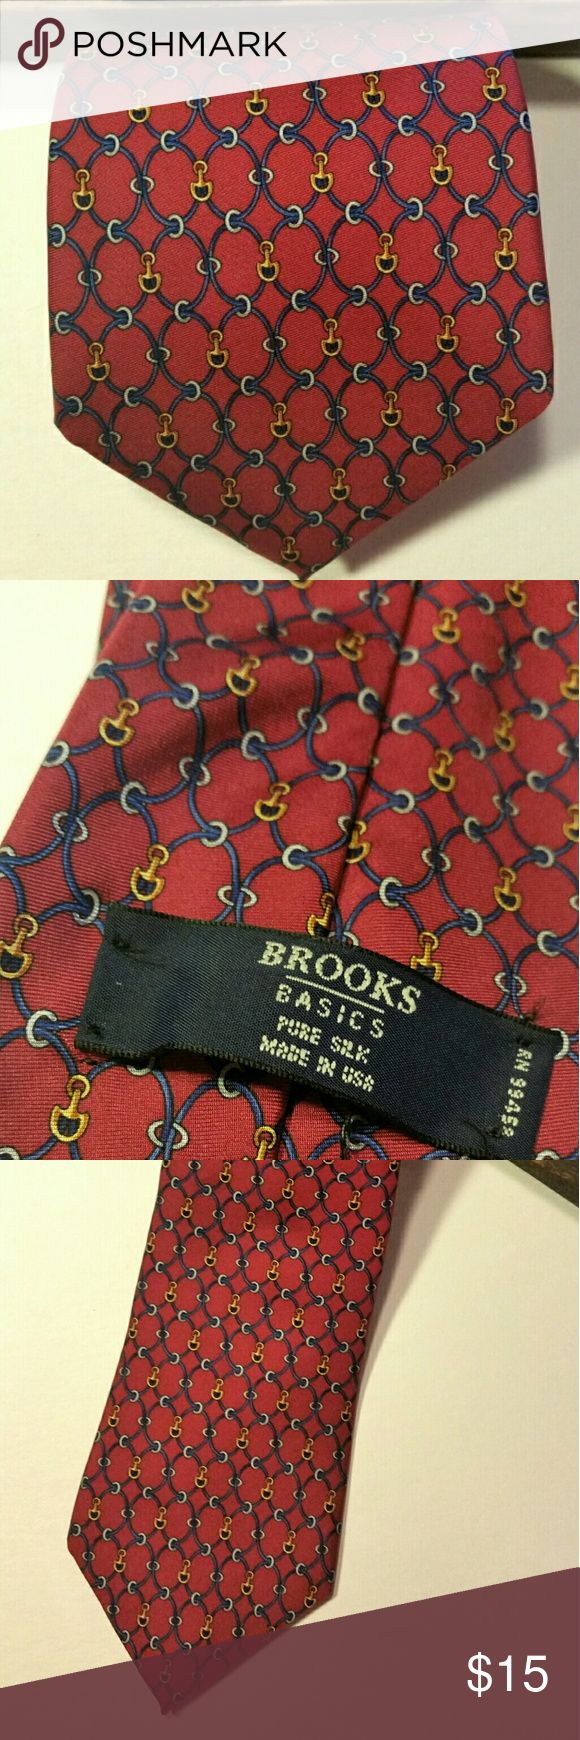 Brooks Brothers Tie, 100% silk Necktie, Brooks Brothers, 100% silk.  Colors: red, blue, gold.  Has Brooks Brothers horsebit contained in the pattern.  Husband has a serious tie addiction - trying to clean out the closet!  EUC. Brooks Brothers Accessories Ties